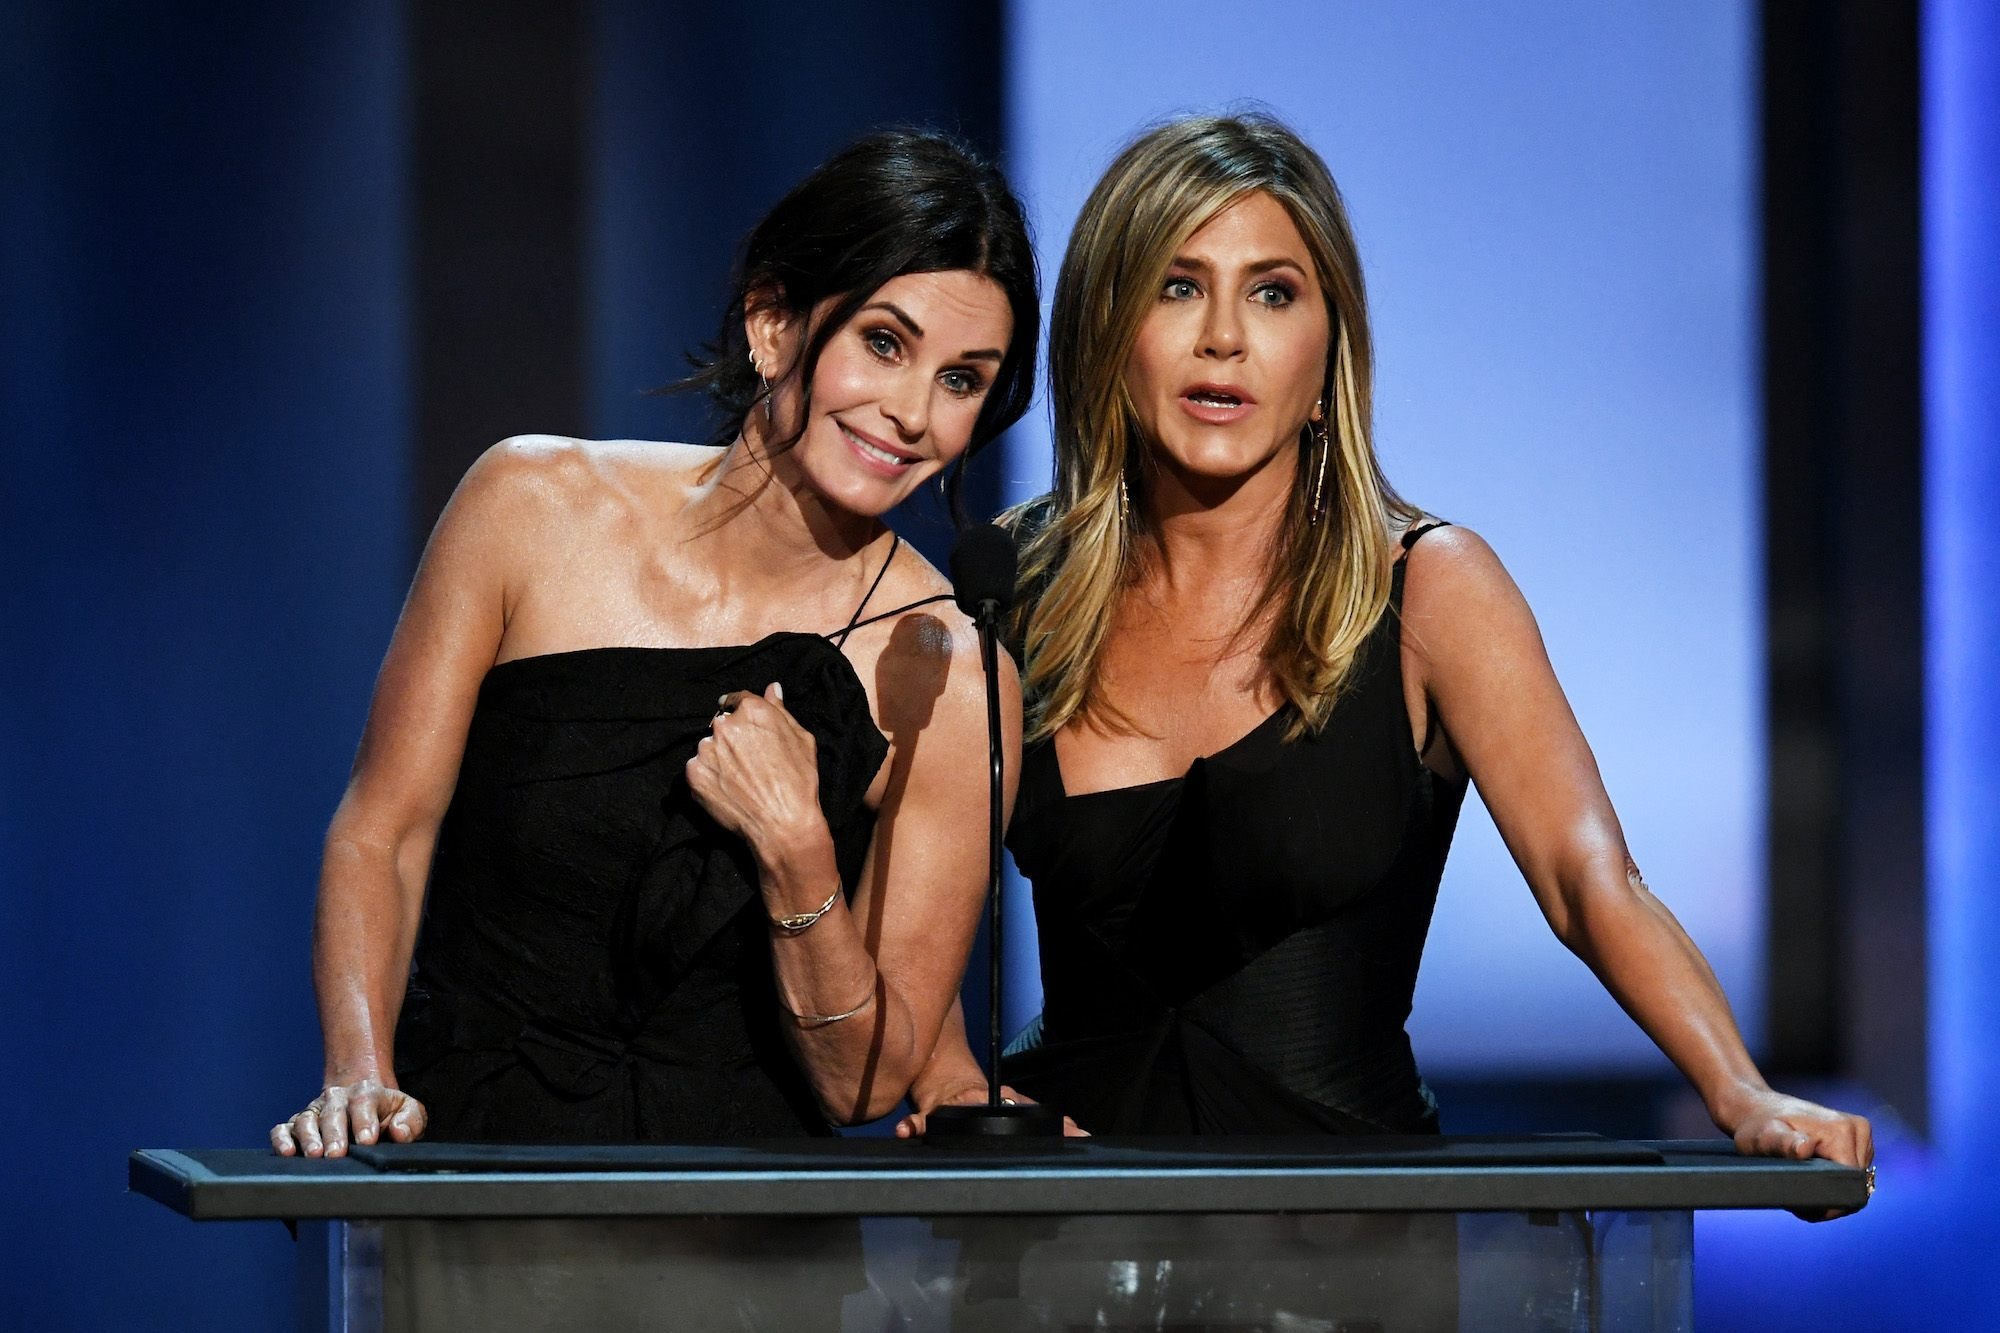 Courteney Cox (L) and Jennifer Aniston speak onstage during the American Film Institute's 46th Life Achievement Award Gala Tribute to George Clooney